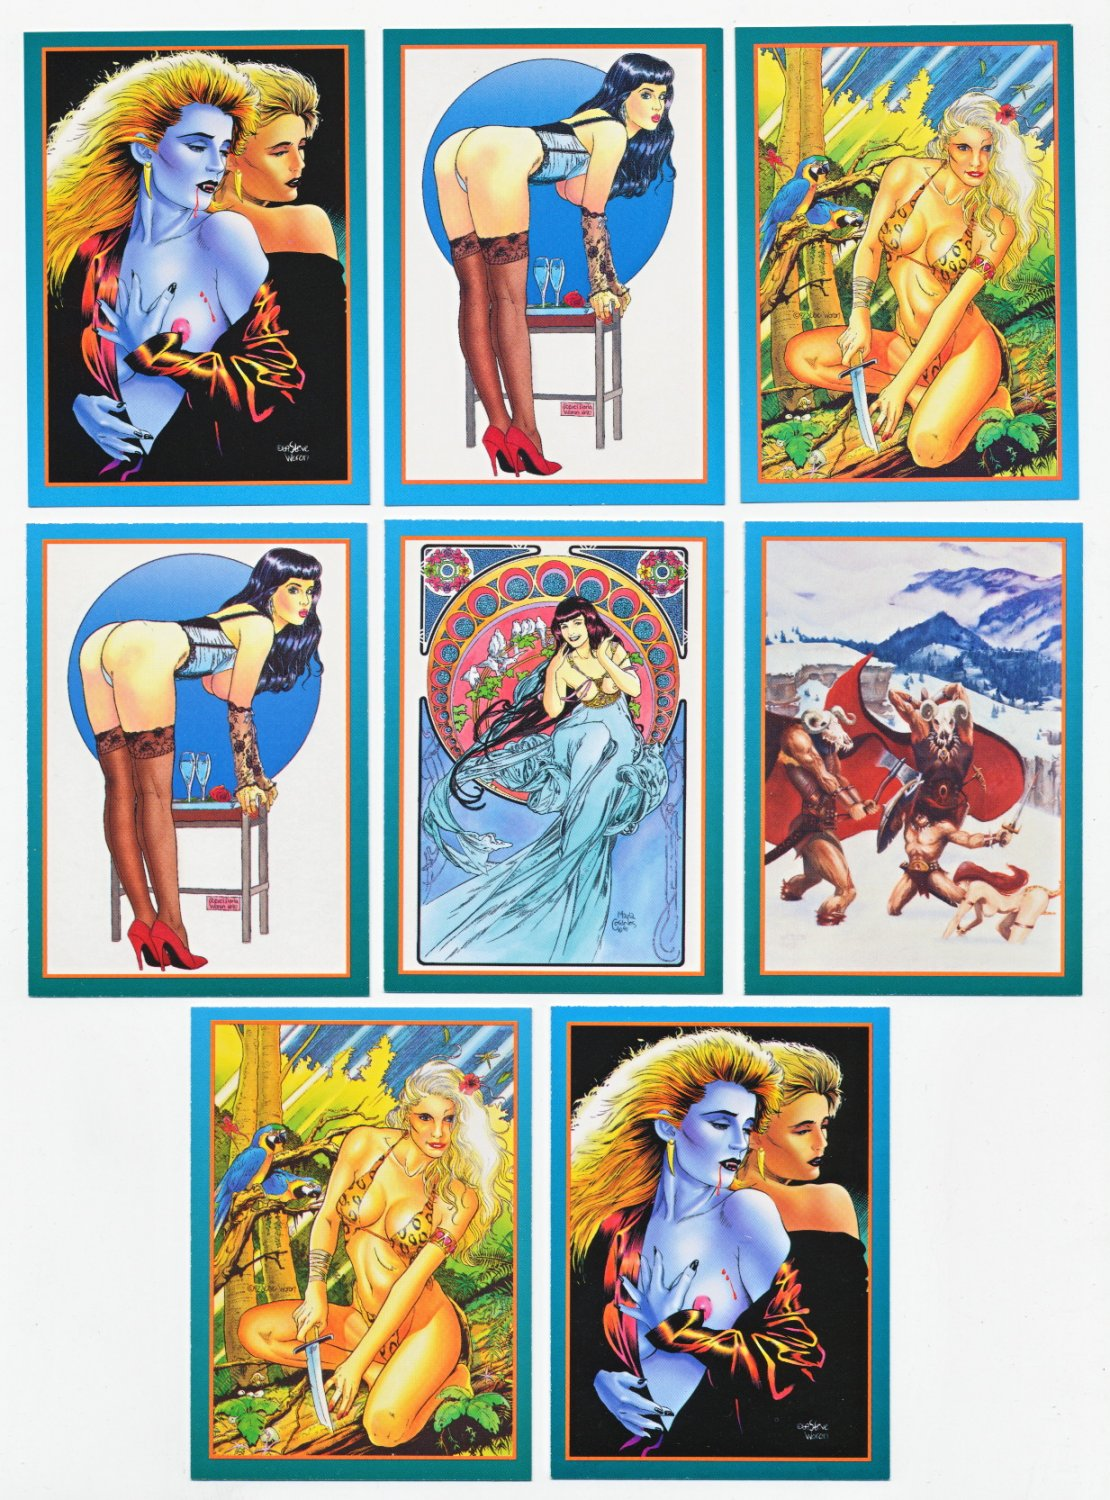 2 Lot~Steve Woron Female Fantasy SIGNED Promo Card Sets 1 & 2 Betty Page& Sheena